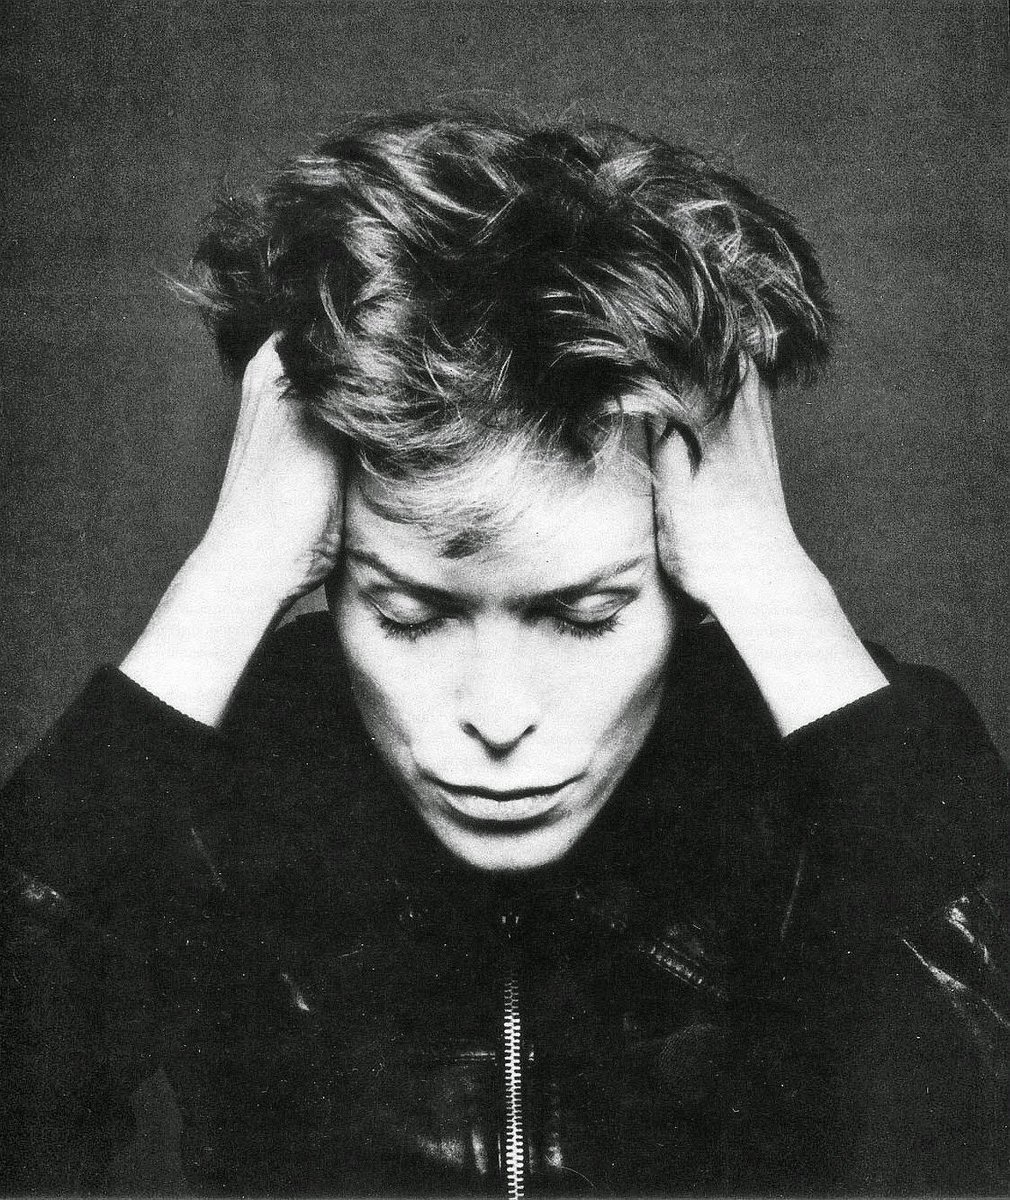 Heroes David Bowie Photoshoot